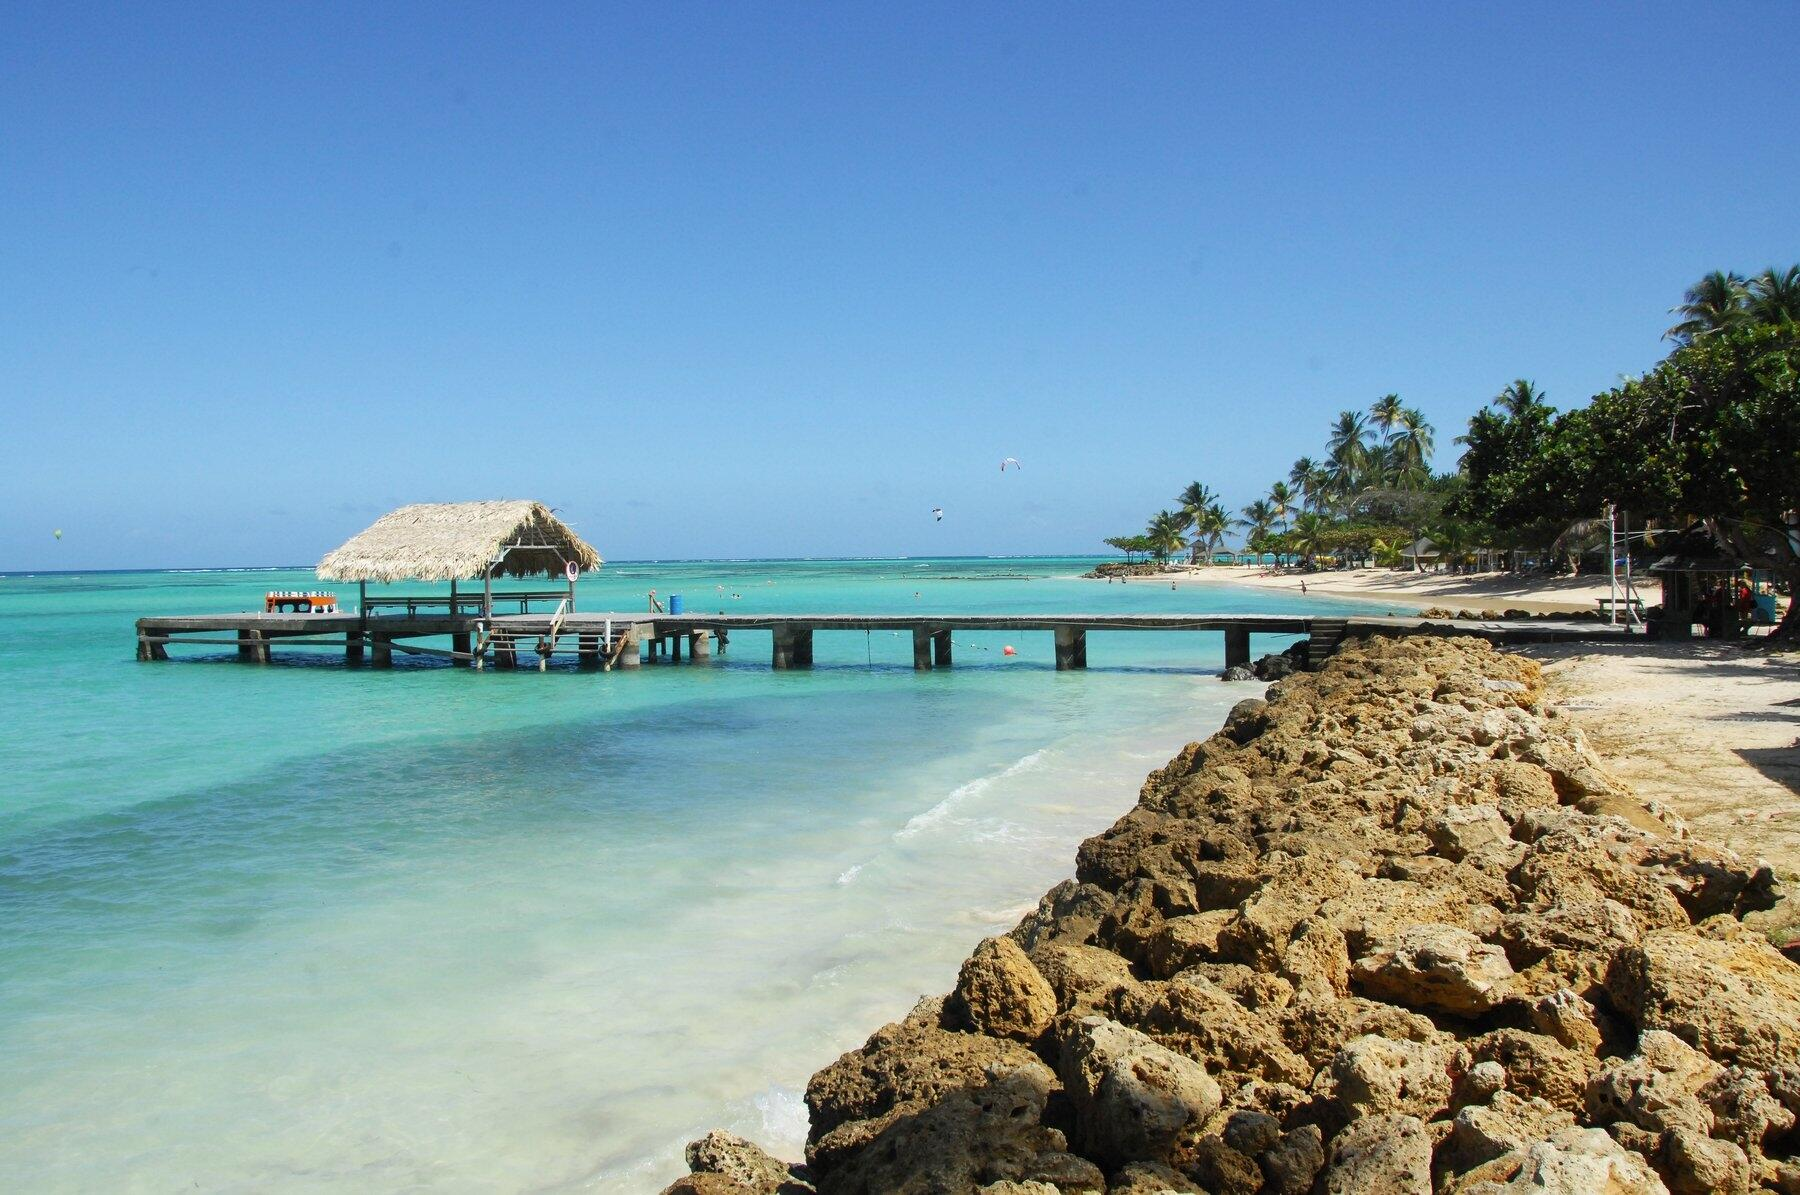 Long pier with gazebo at end at Tobago's Pigeon Point